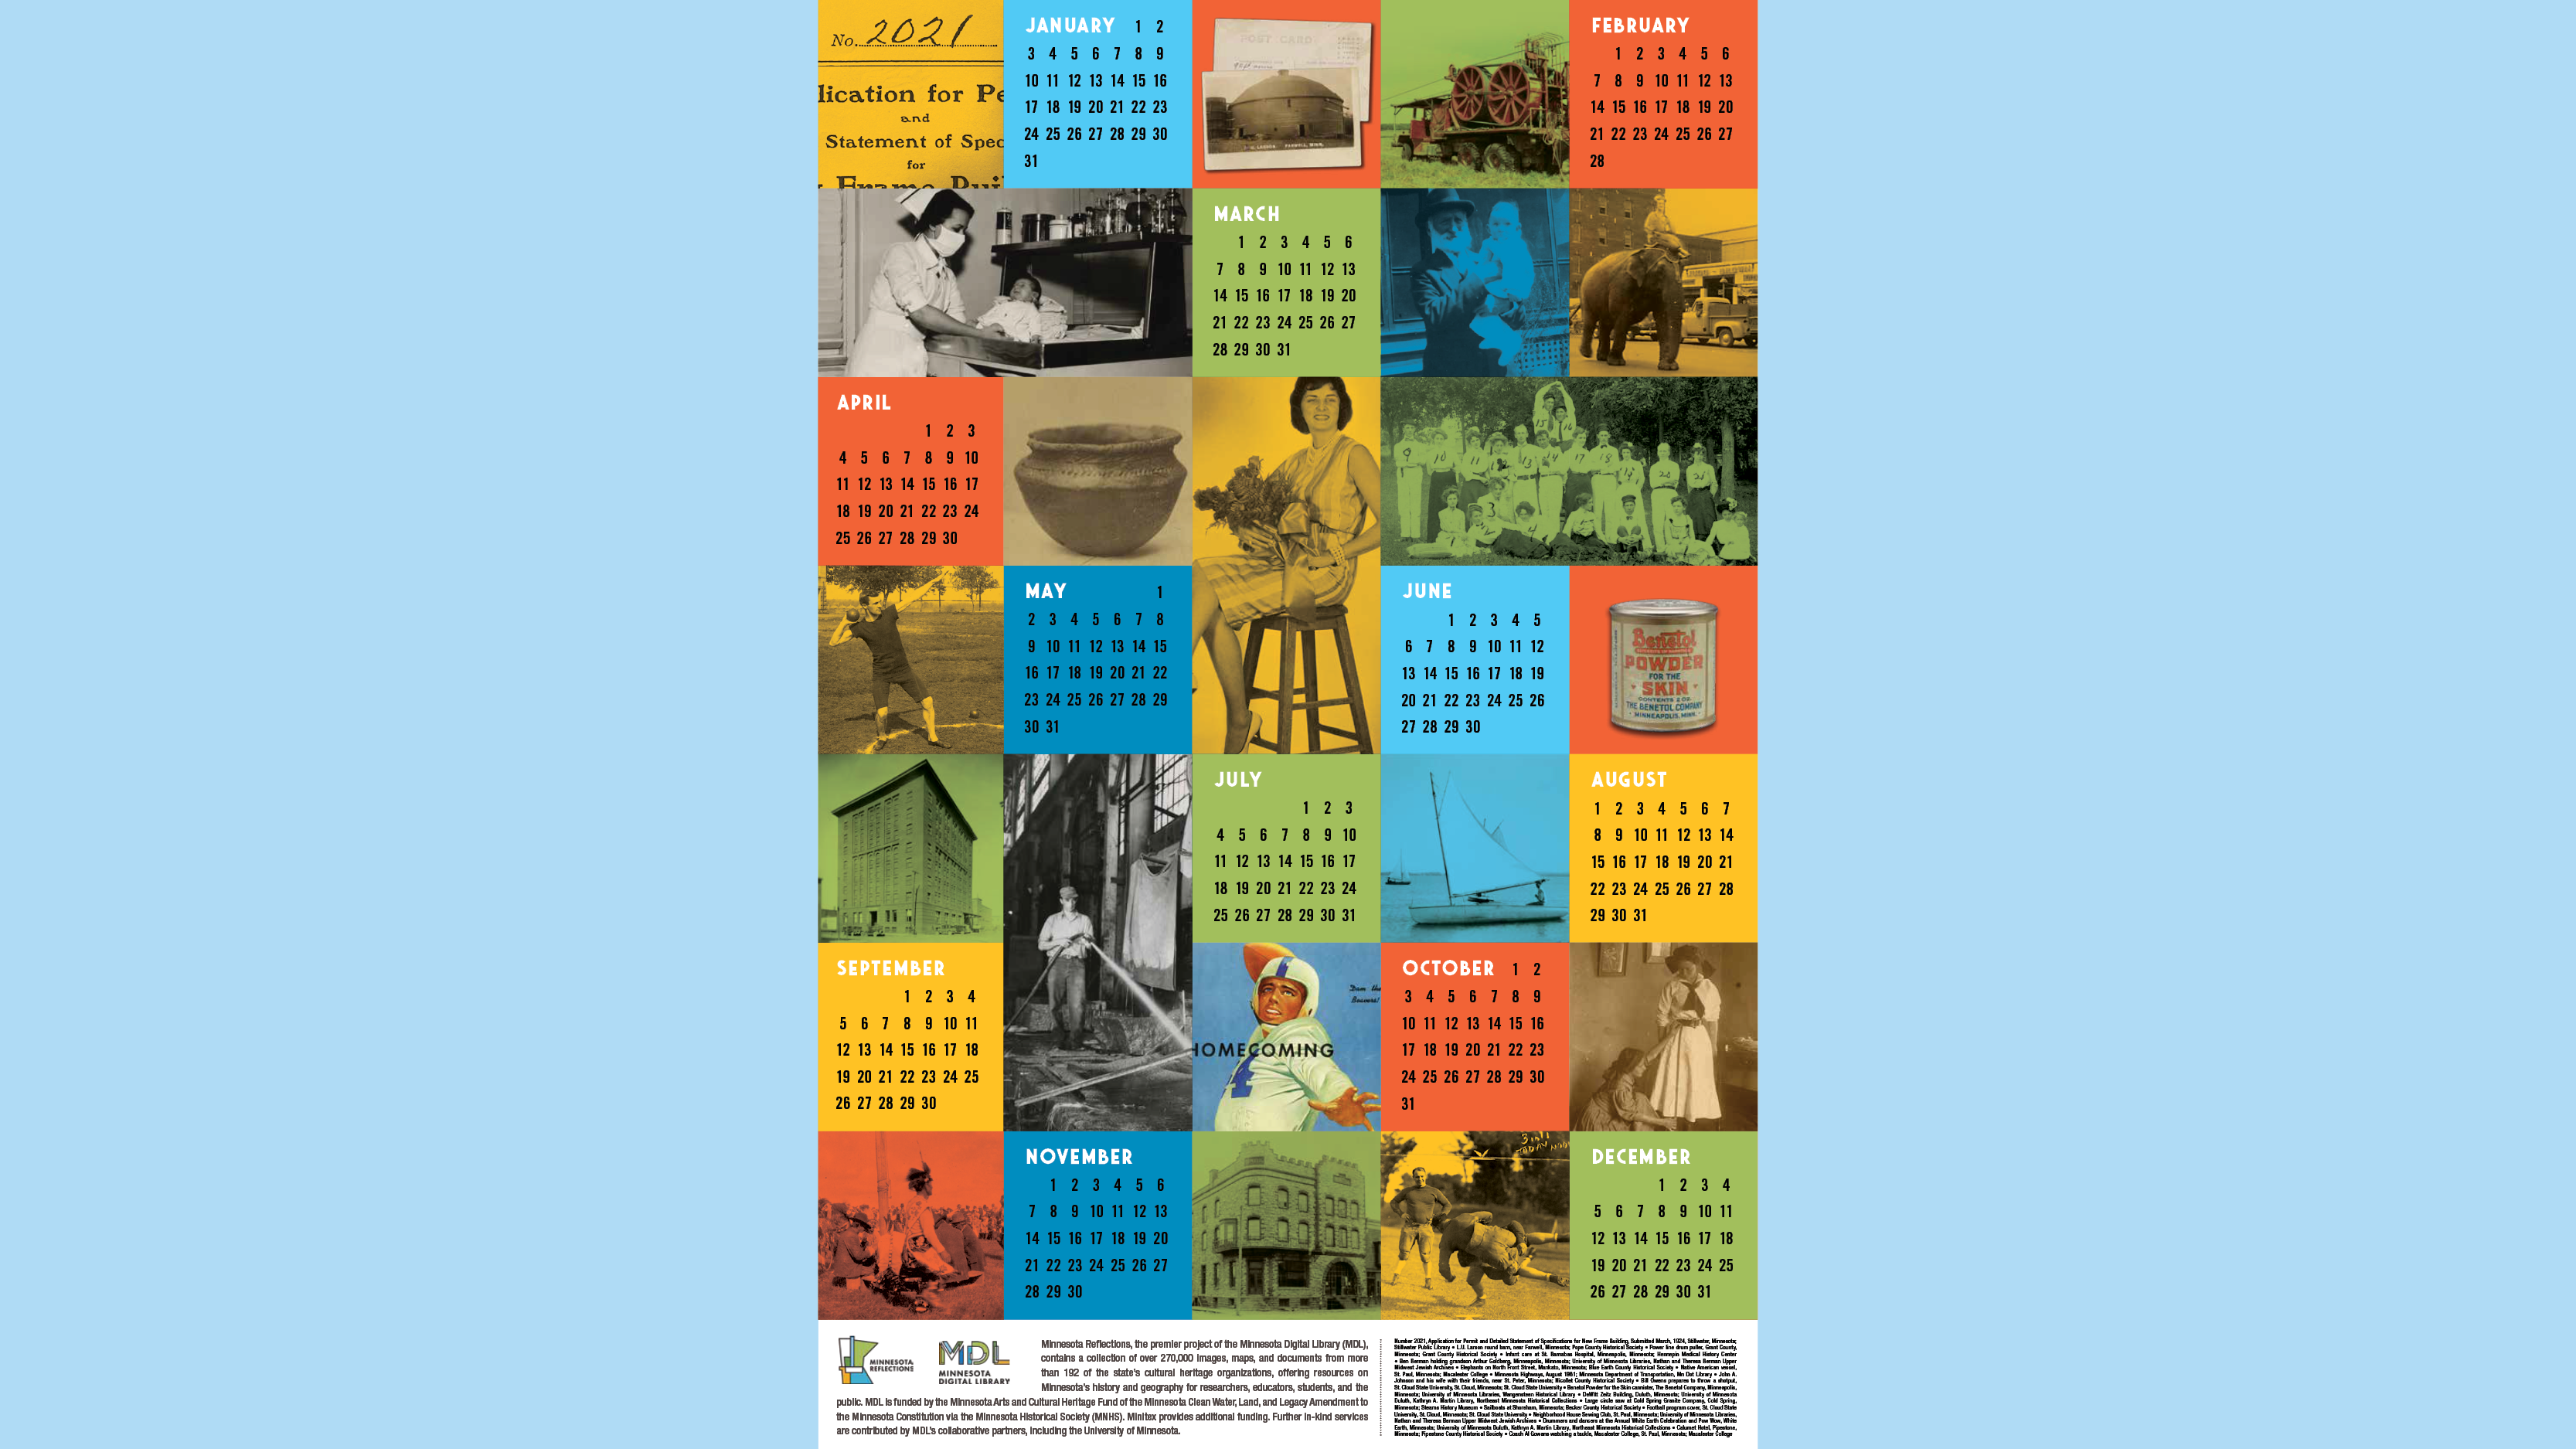 Minnesota Digital Library 2021 Calendar